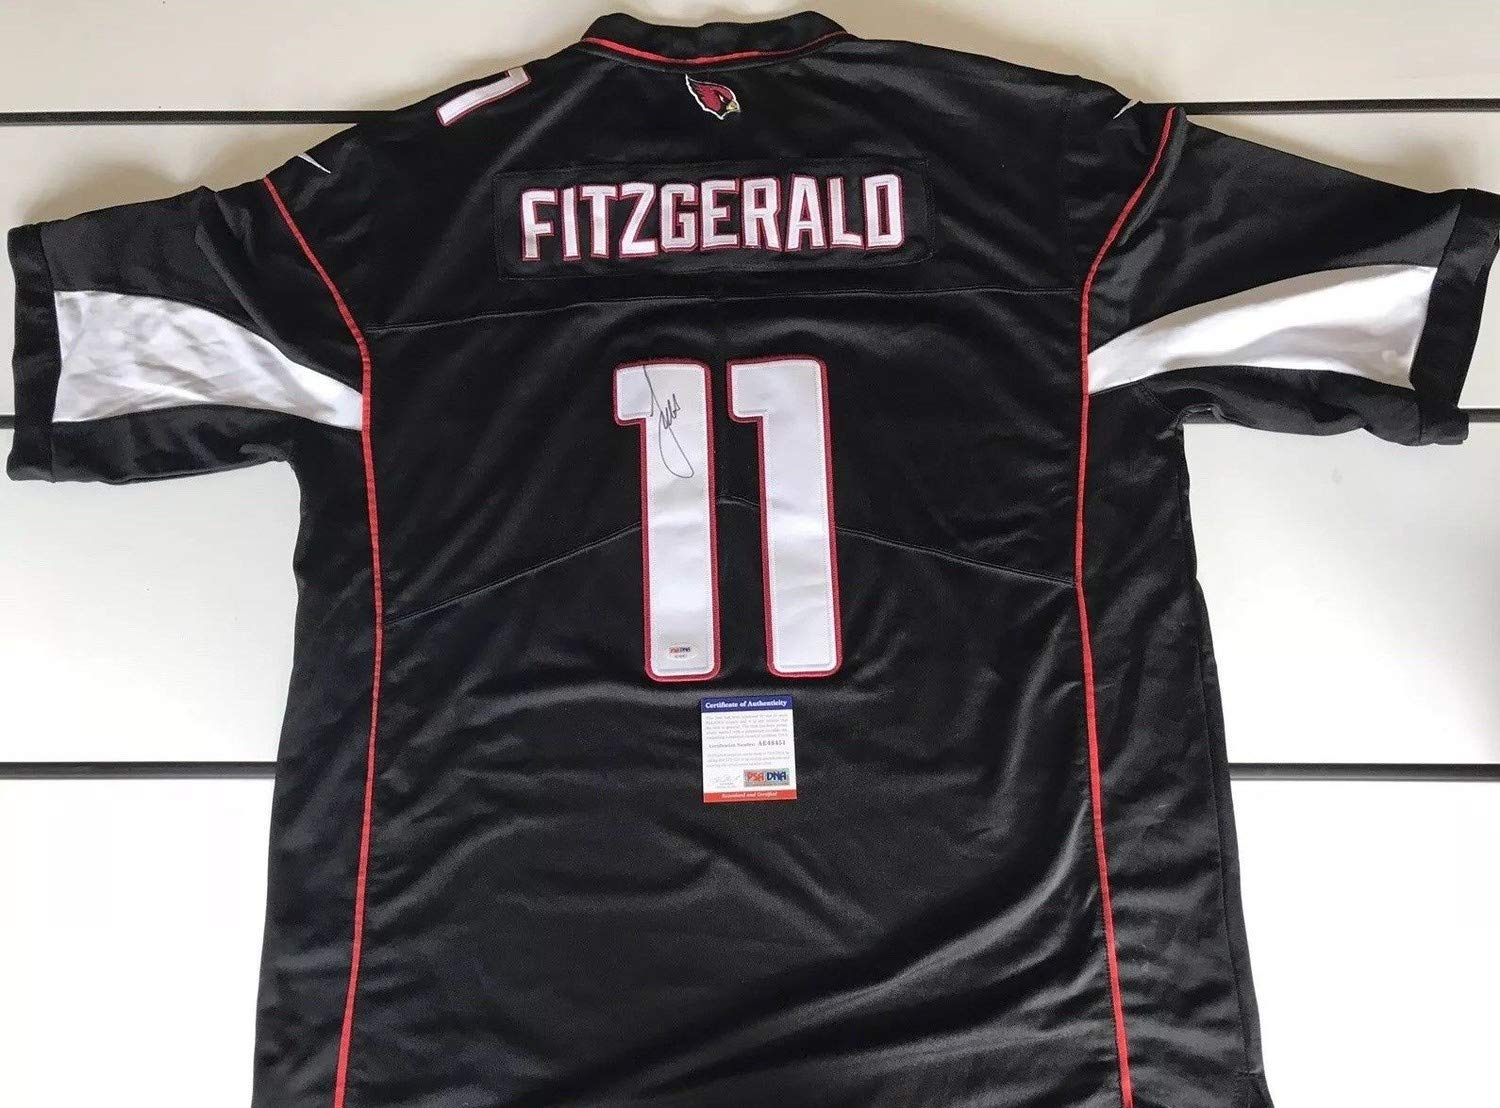 on sale 3f1b9 c9a42 Larry Fitzgerald Autographed Signed Jersey with Memorabilia ...